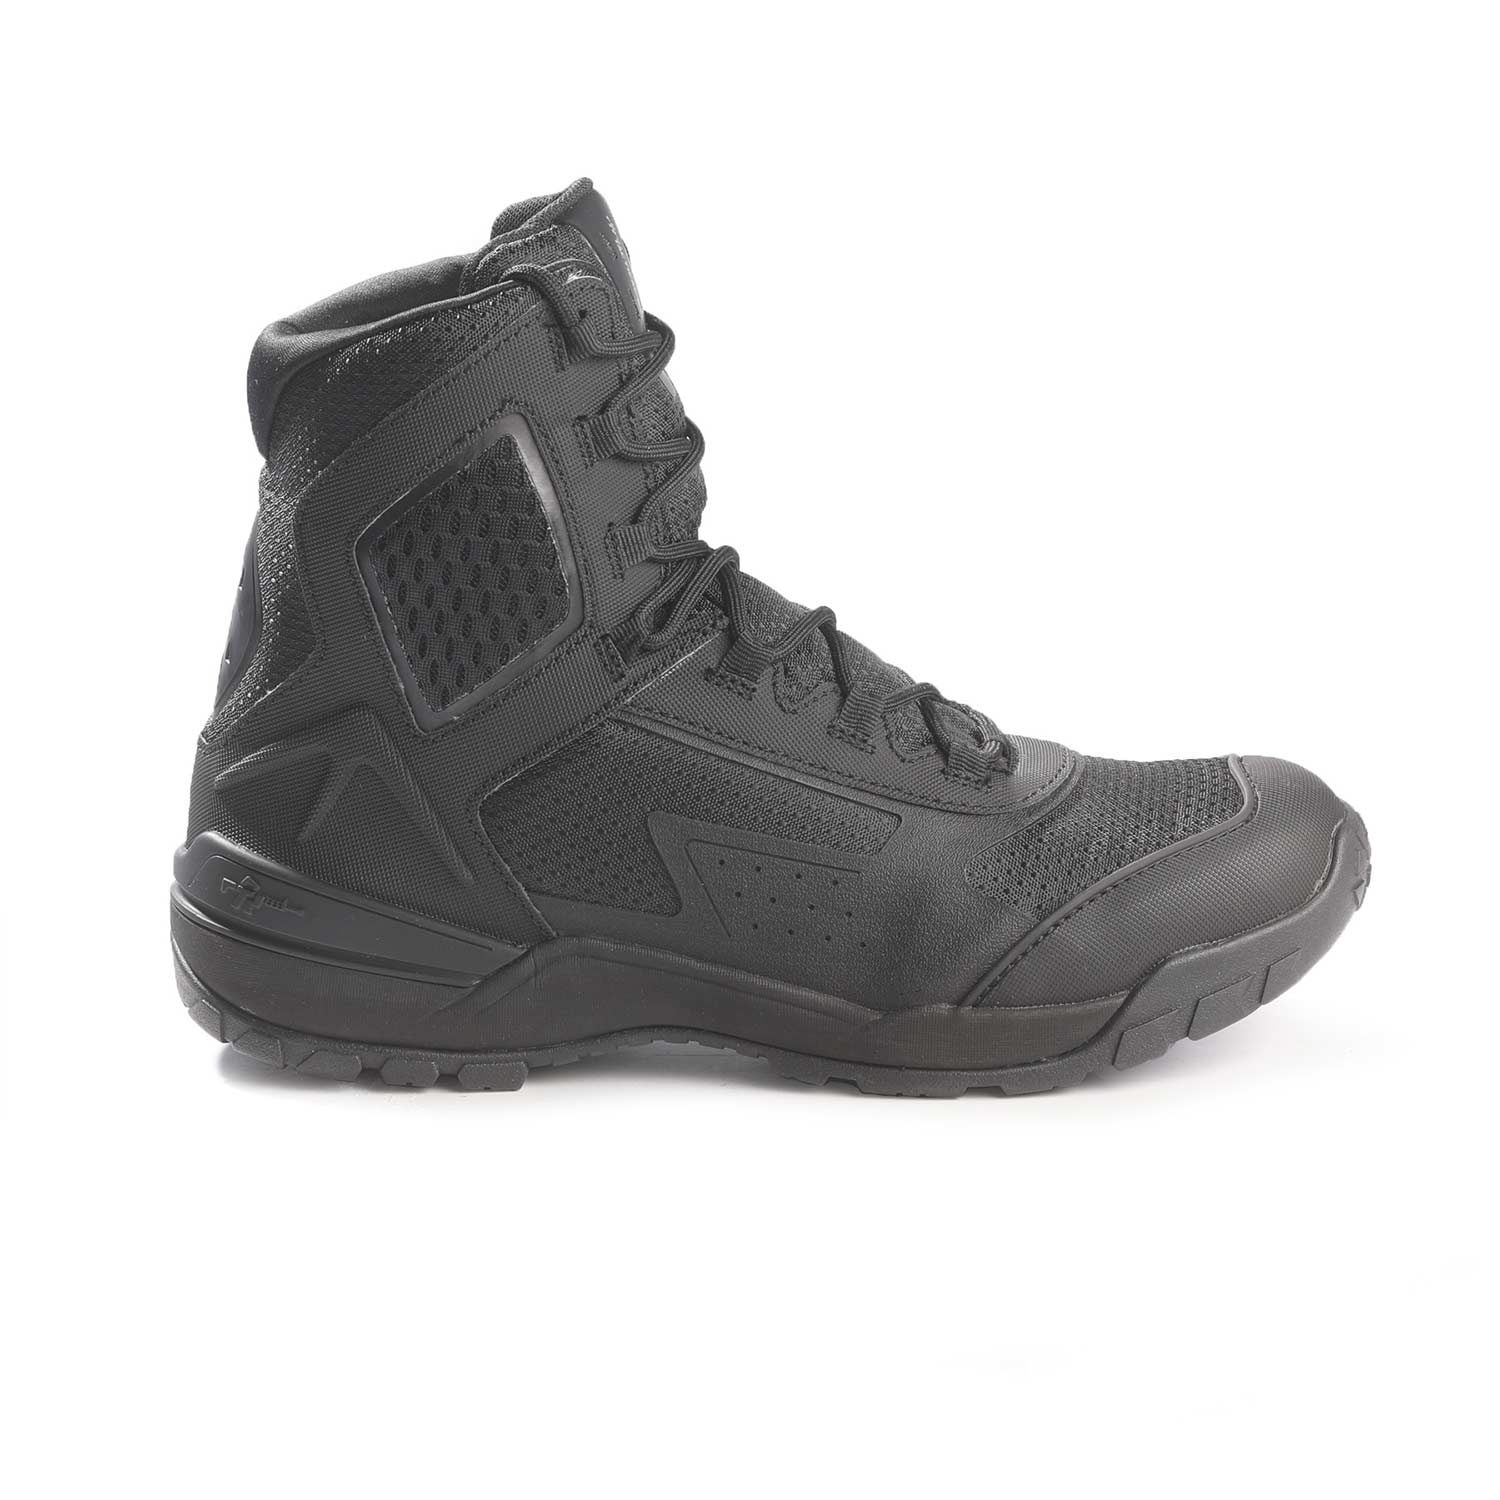 Tactical Research Ultralight 10 40 7 Quot Hot Weather Boot